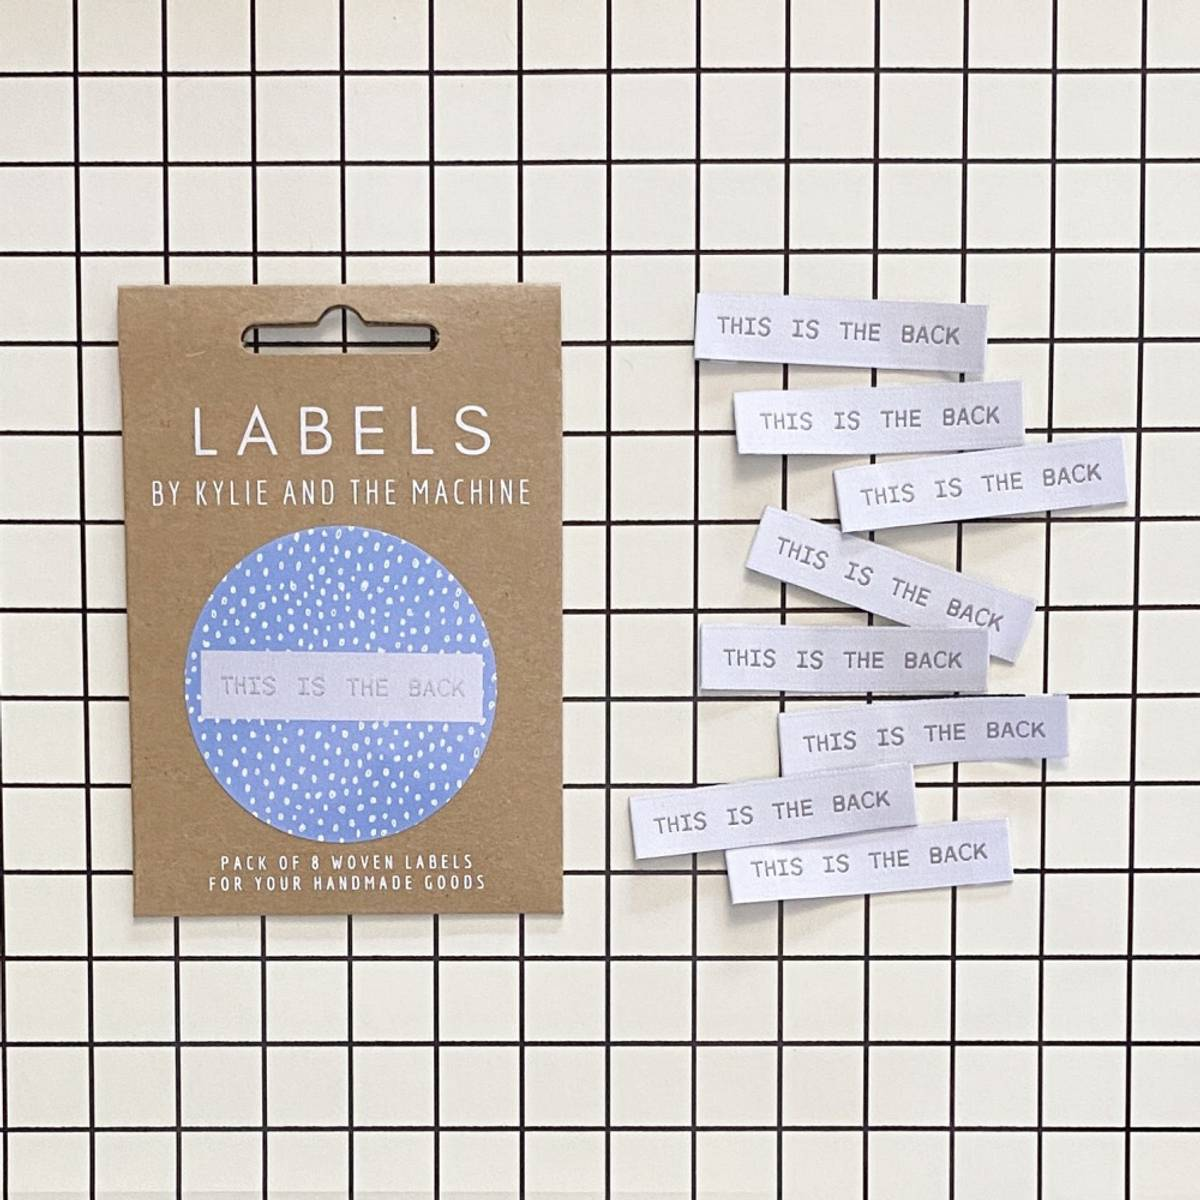 Labels - This is the back